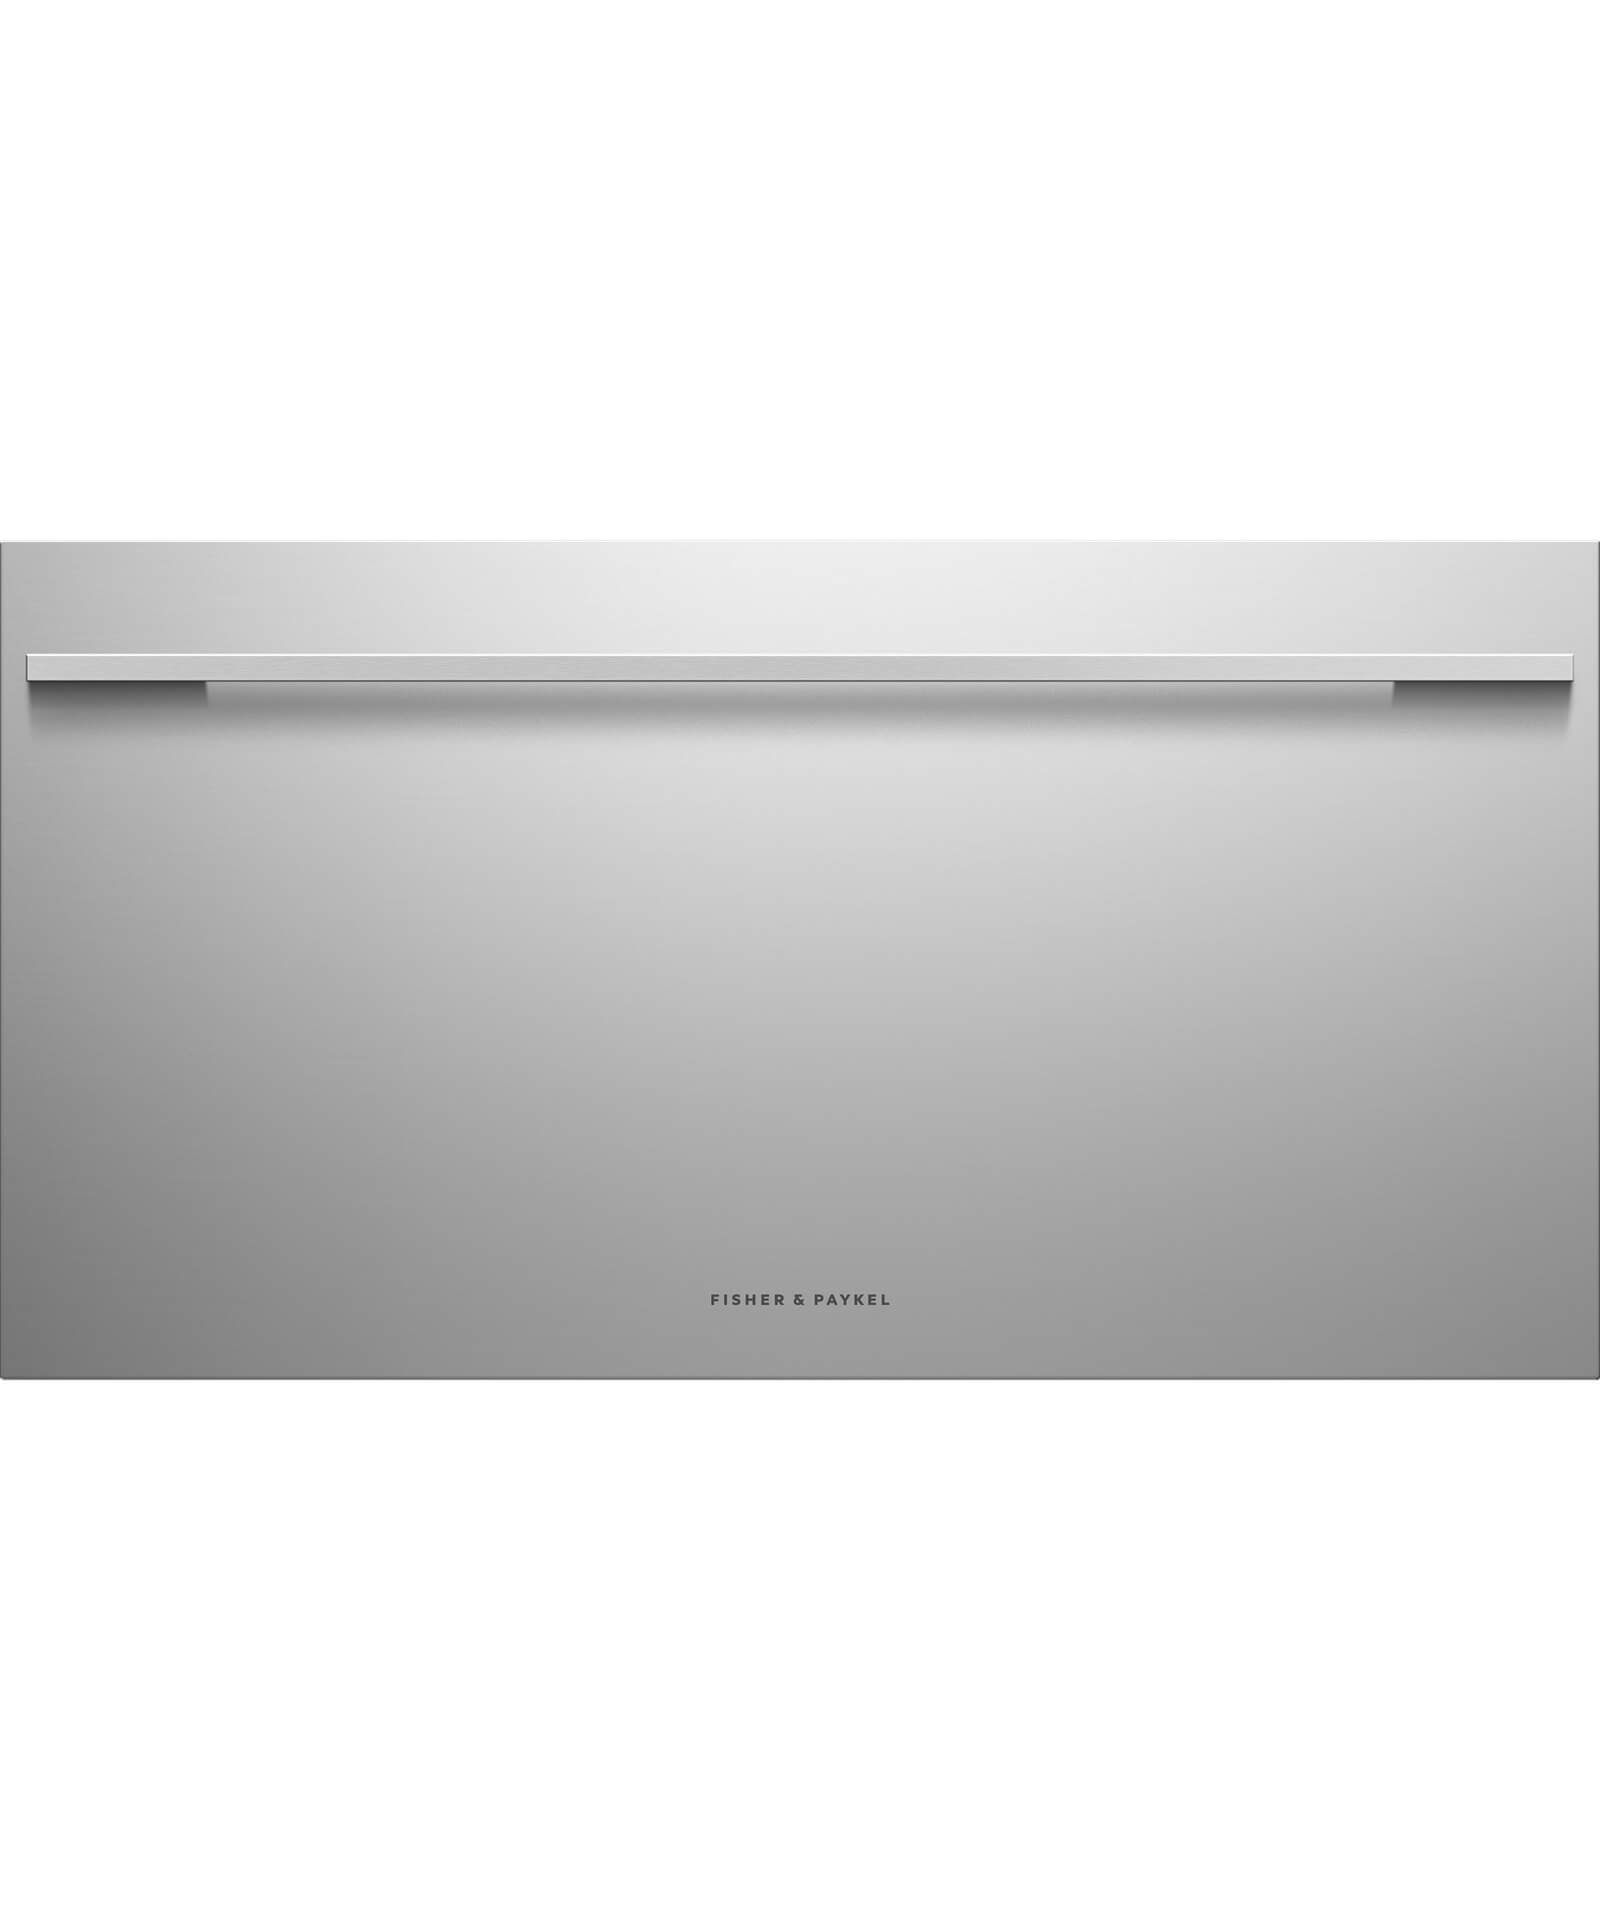 RB90S64MKIW1 - CoolDrawer™ Multi-temperature Drawer - 25282